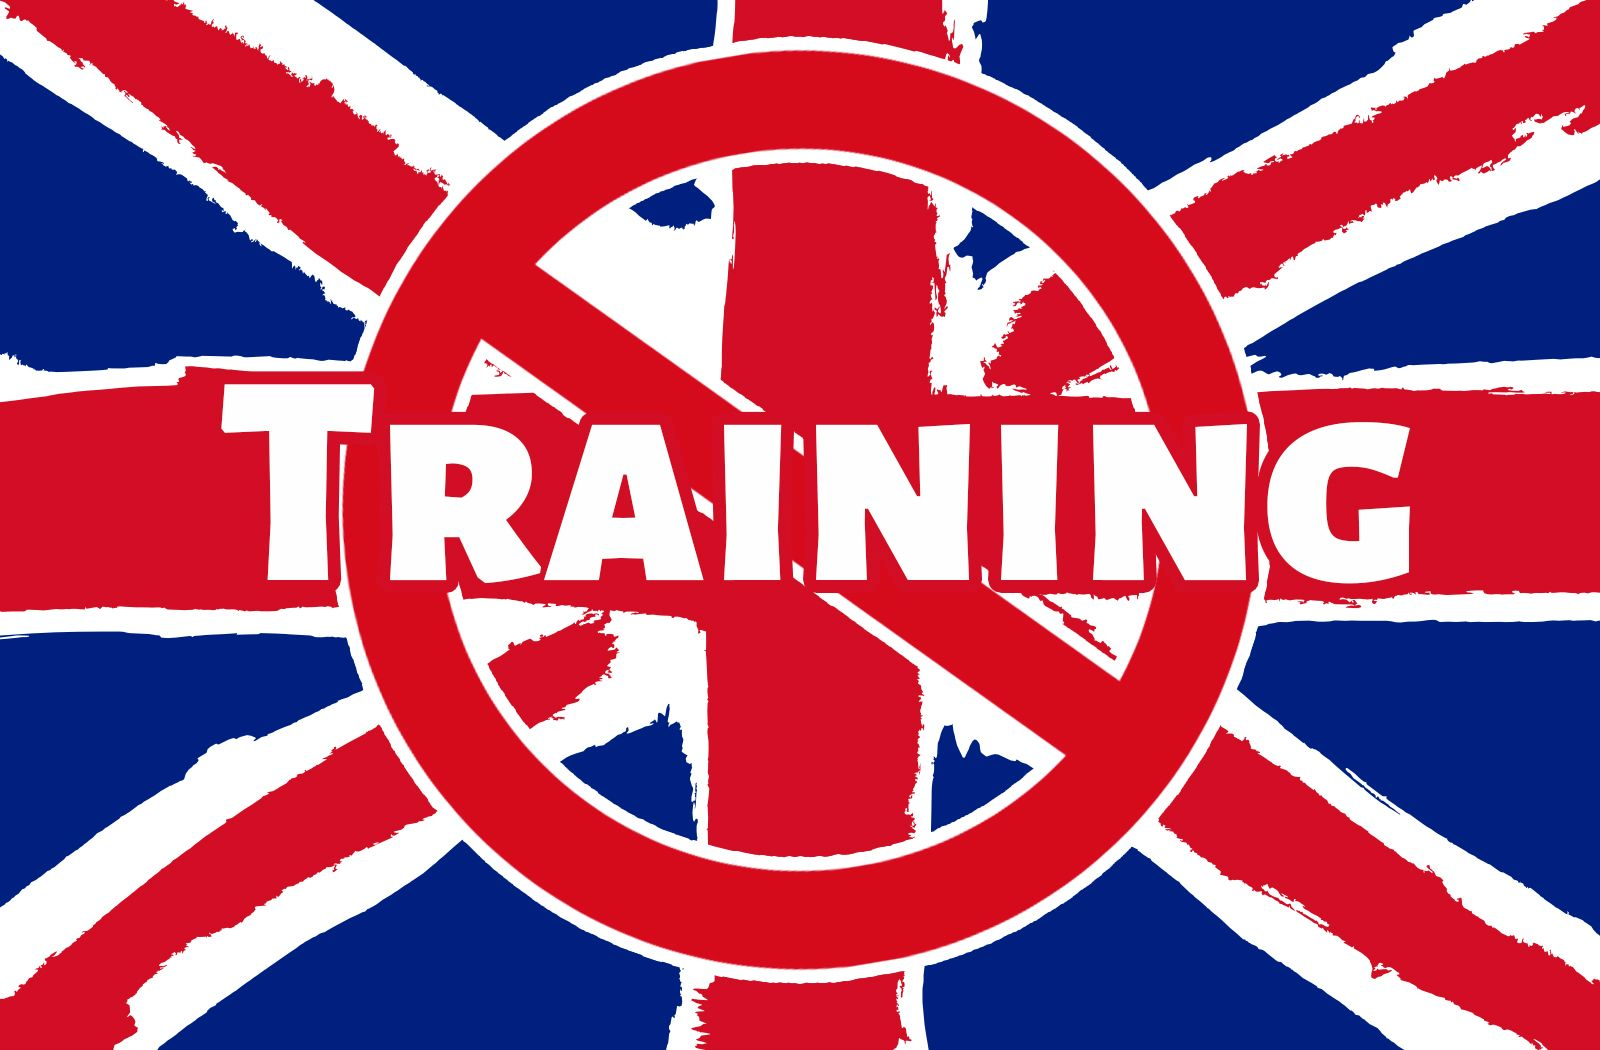 Expat Managers - Why do you Conduct Training in English?